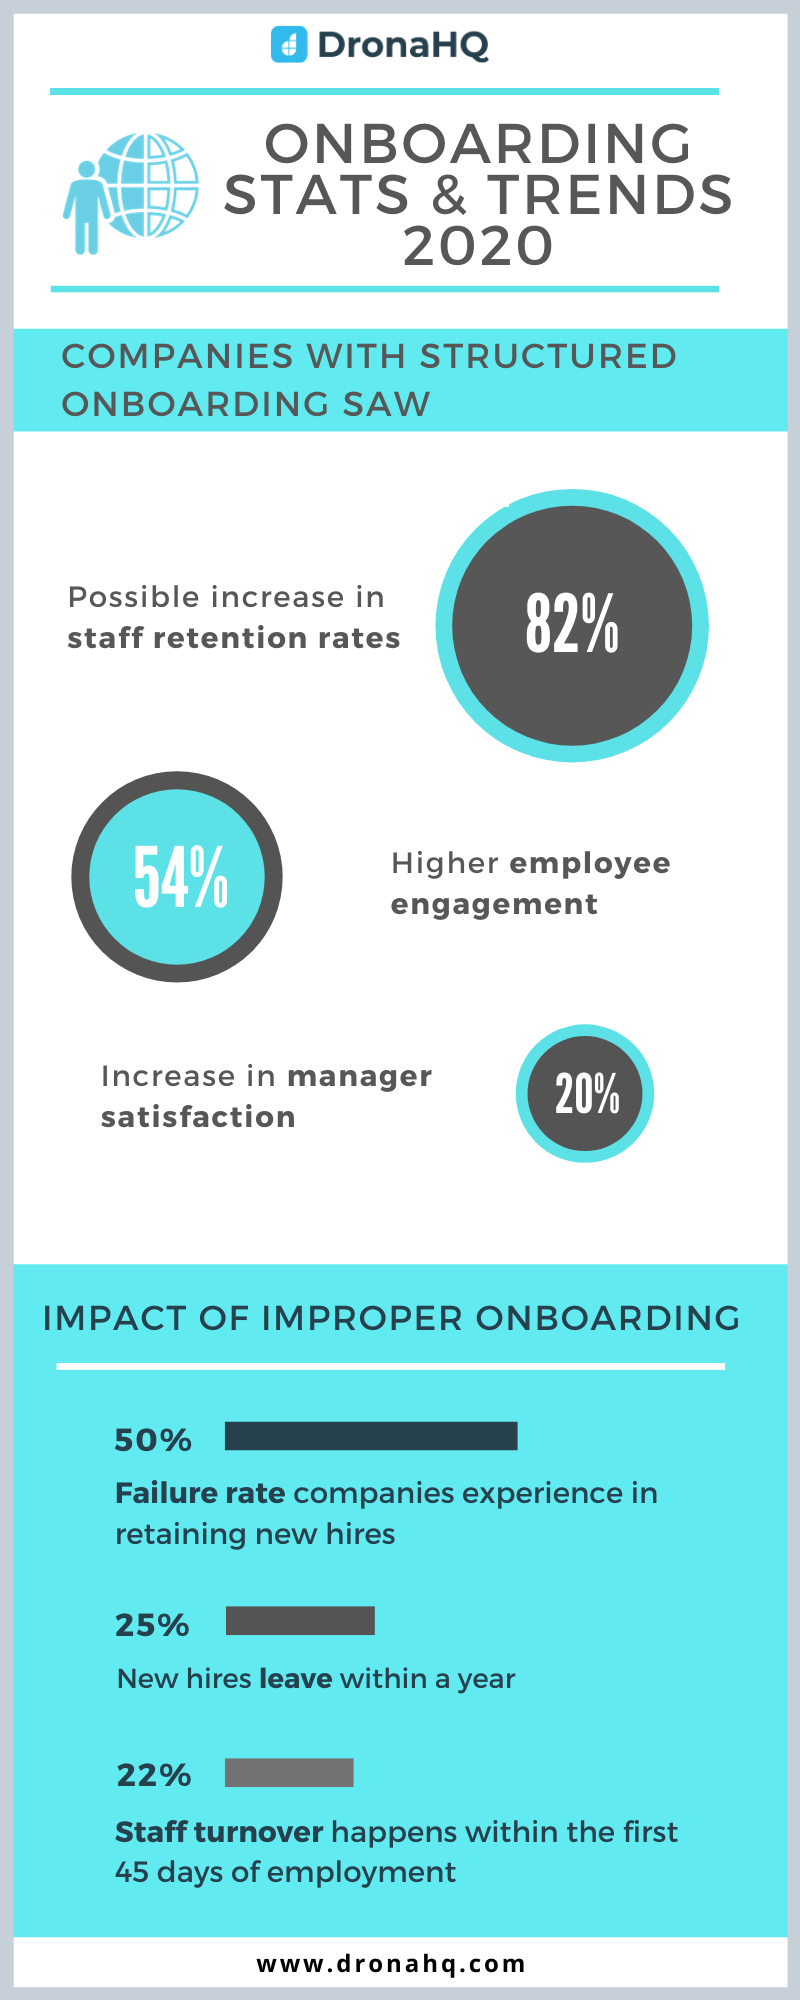 onboarding stats 2020 infographic